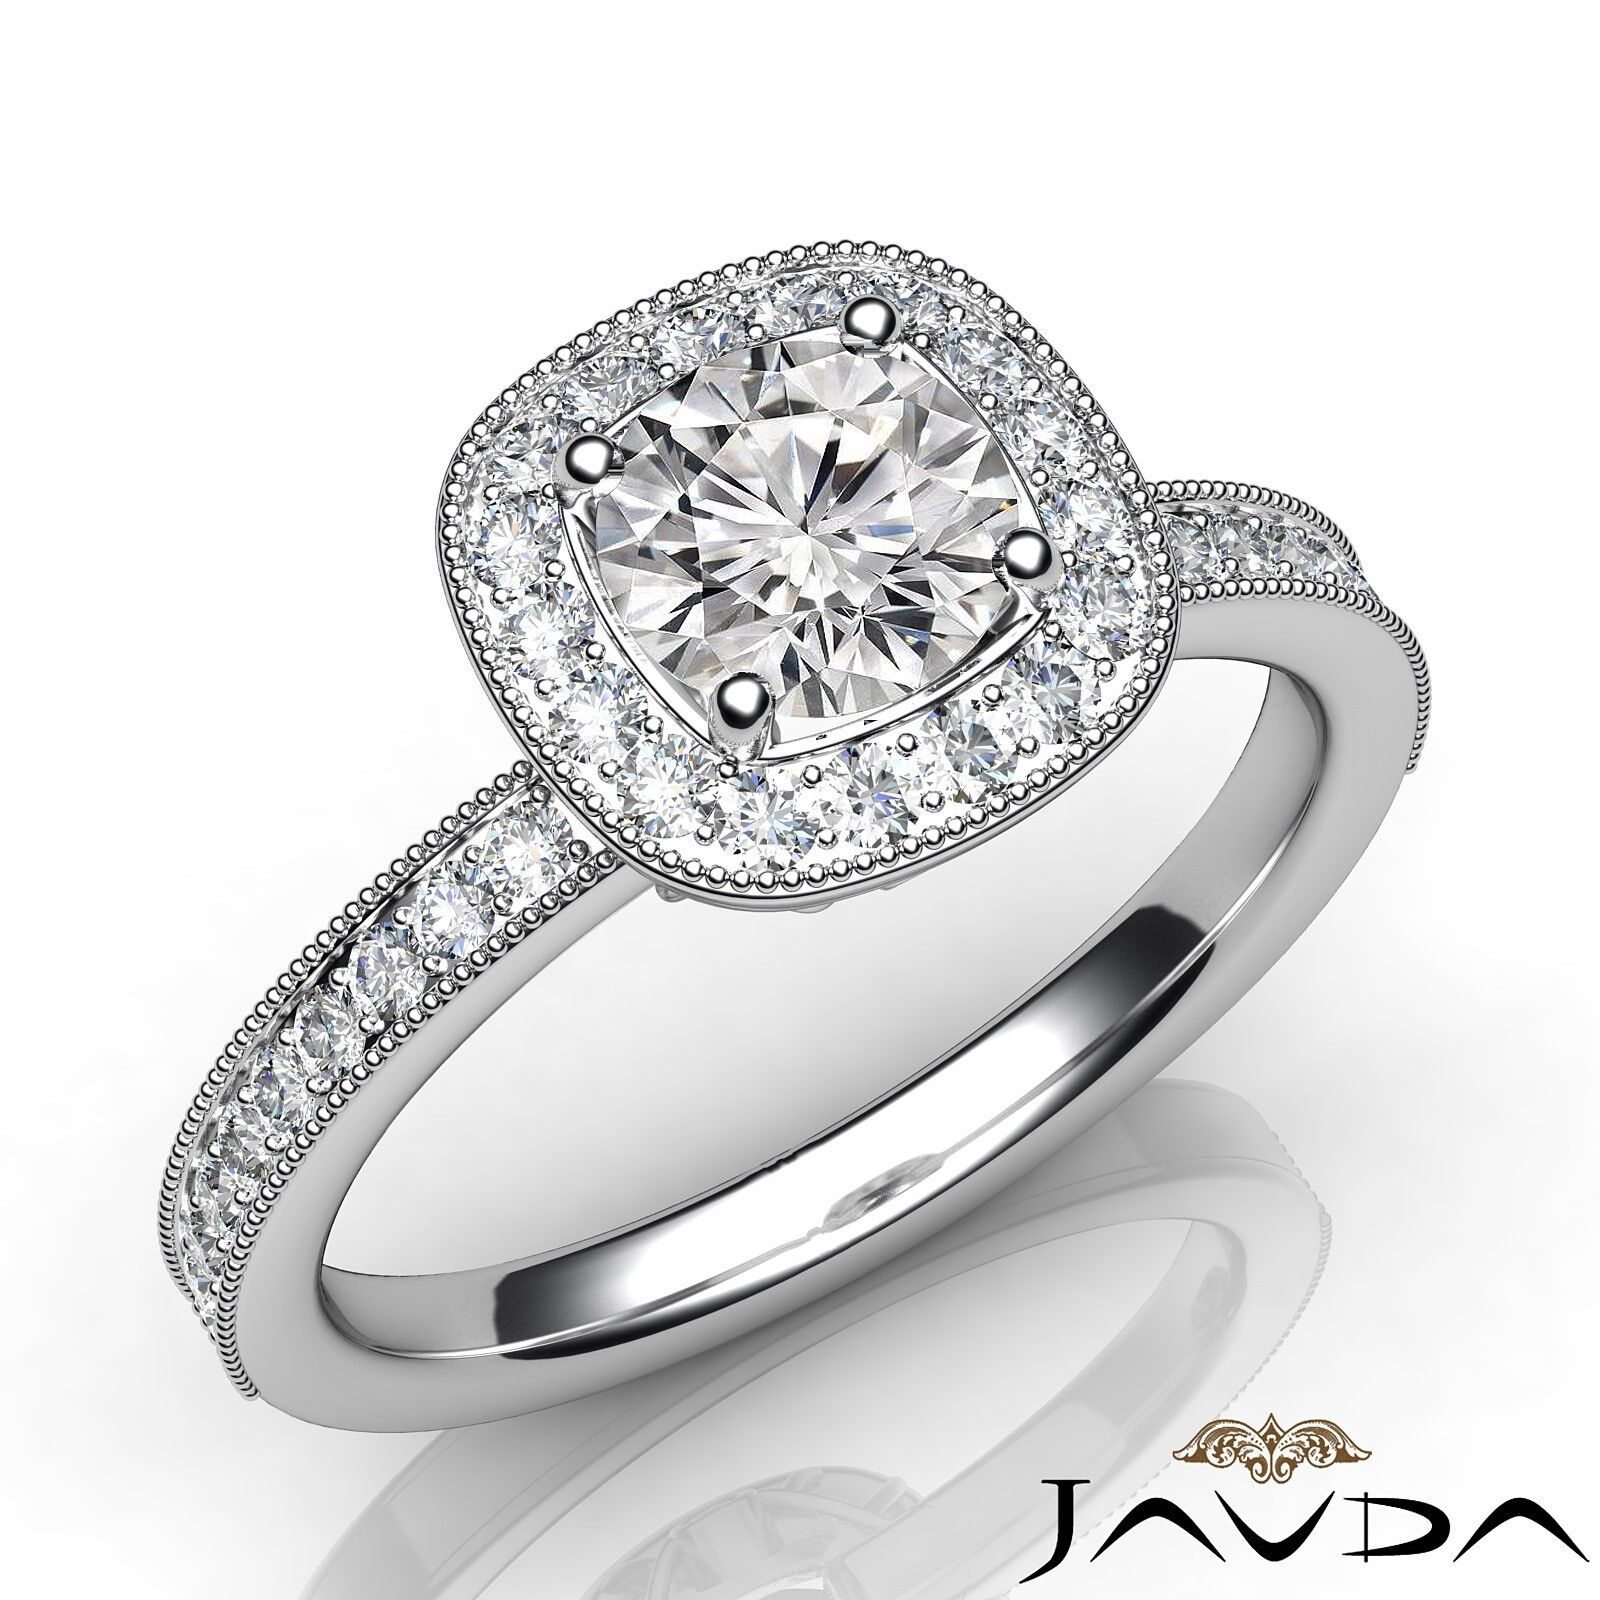 0.9ctw Comfort Fit Round Diamond Engagement Ring GIA E-VVS2 White Gold Women New